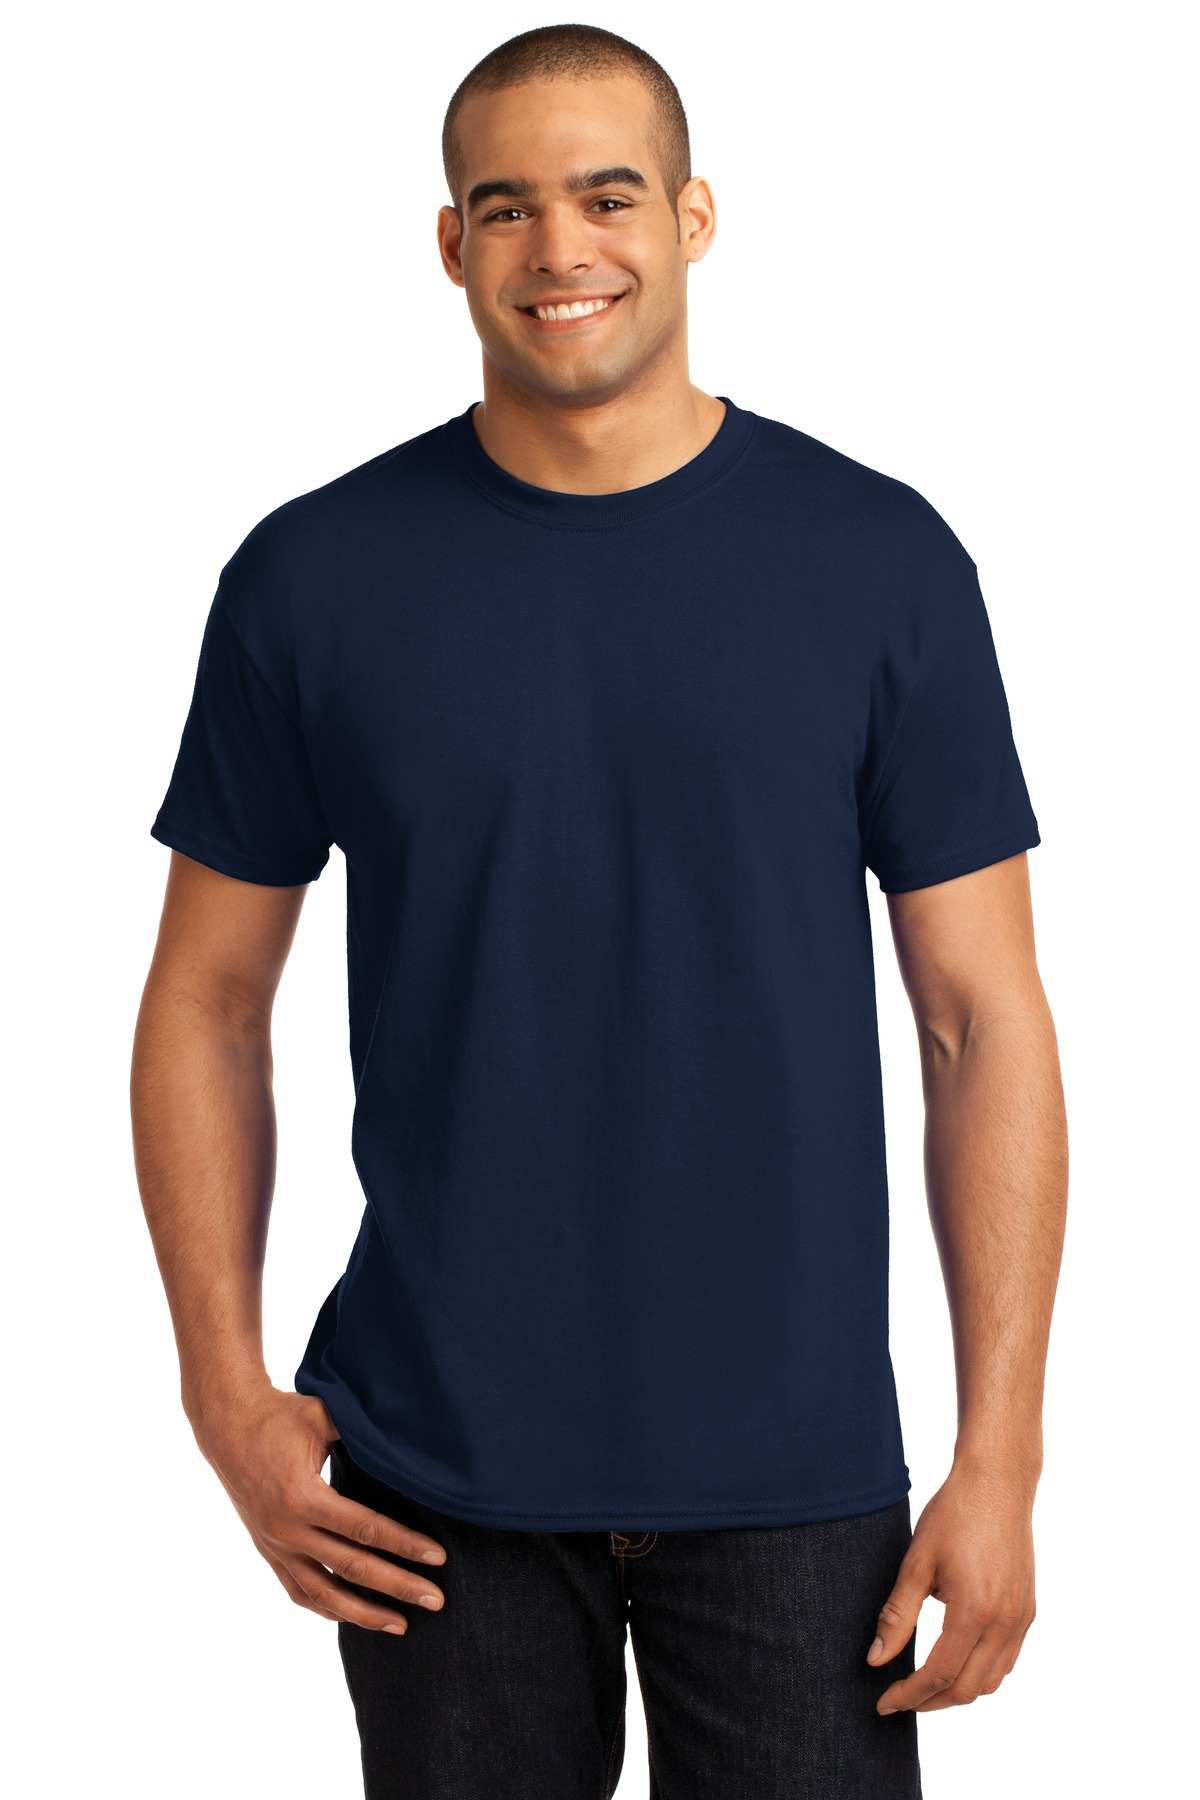 Hanes  - EcoSmart  50-50 Cotton-Poly T-Shirt. 5170